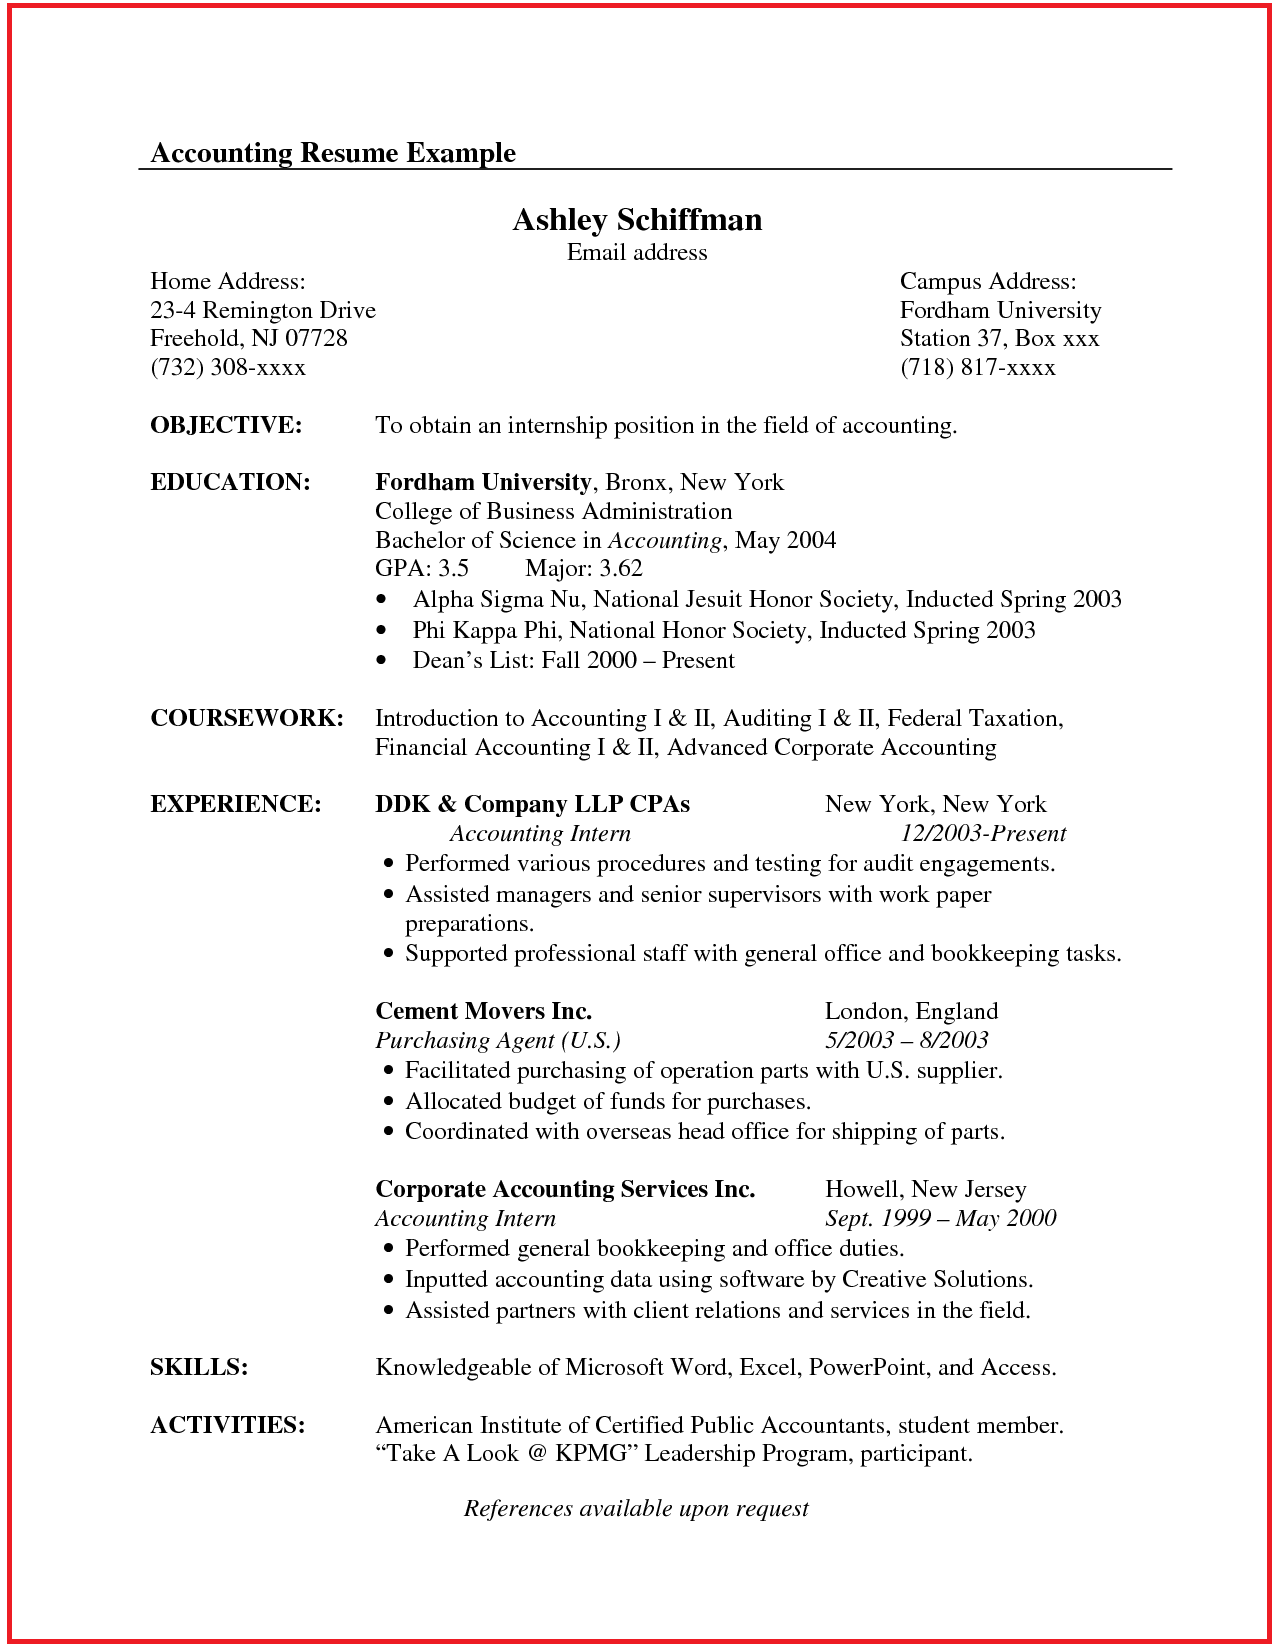 Accountant Resume Sample Canada   Http://www.jobresume.website/accountant  Resume Sample Canada/